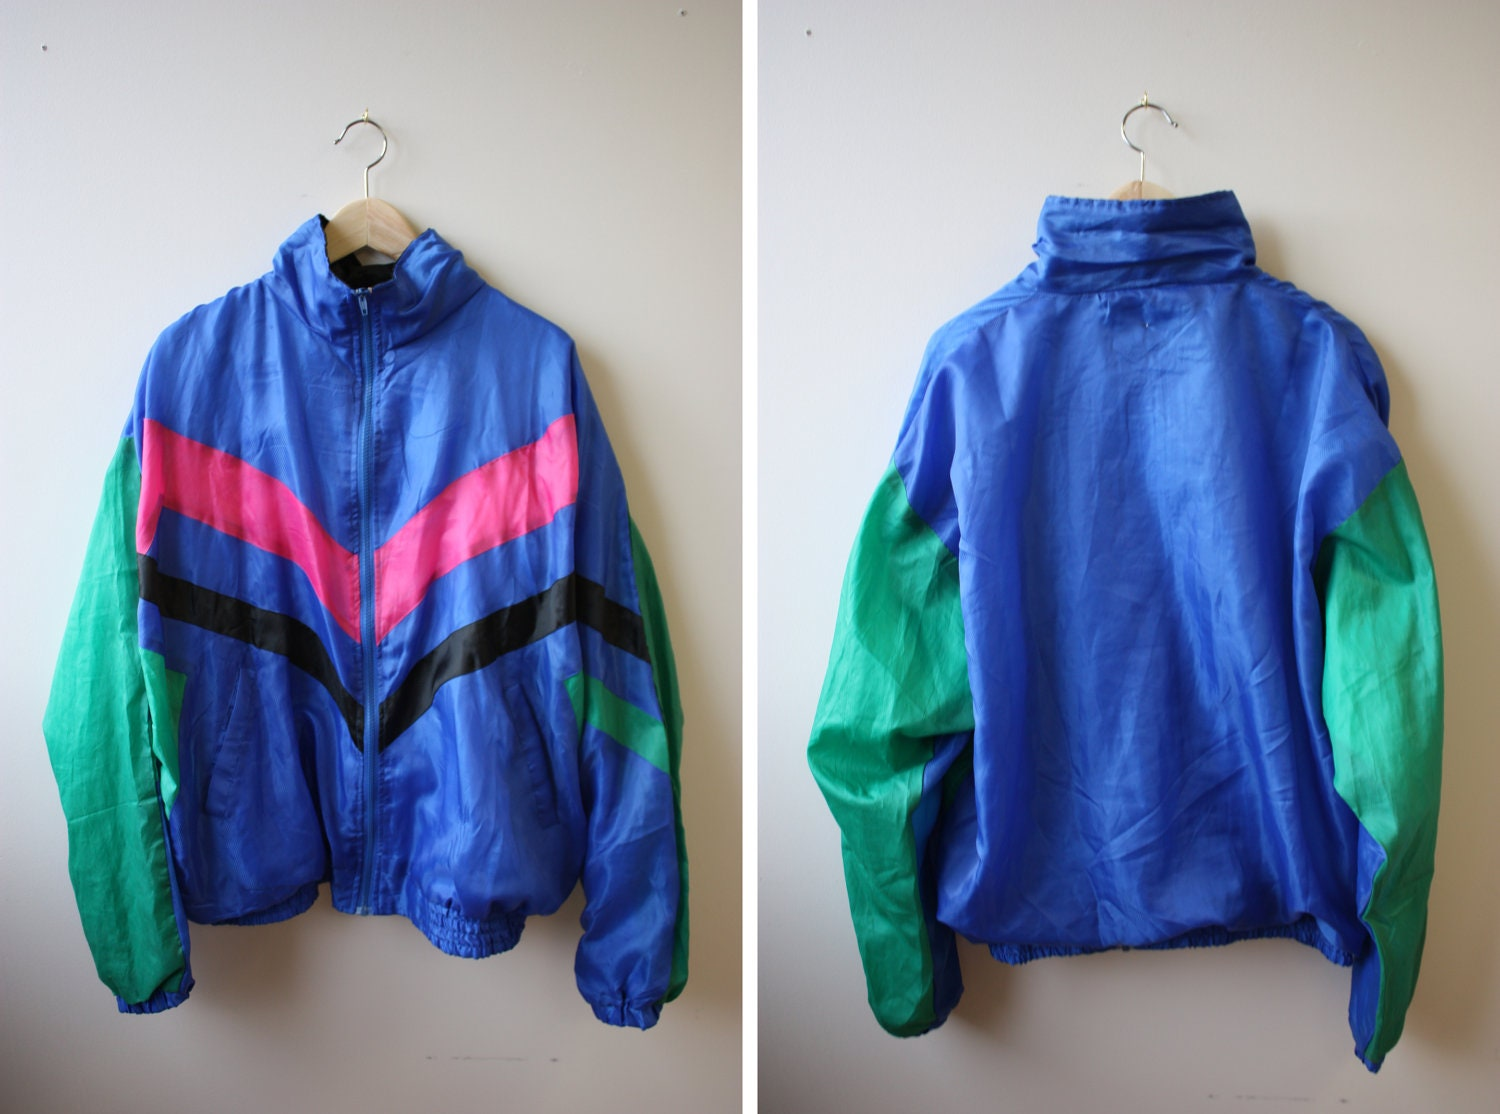 Vintage 80s/90s windbreaker jacket 4 neon colors